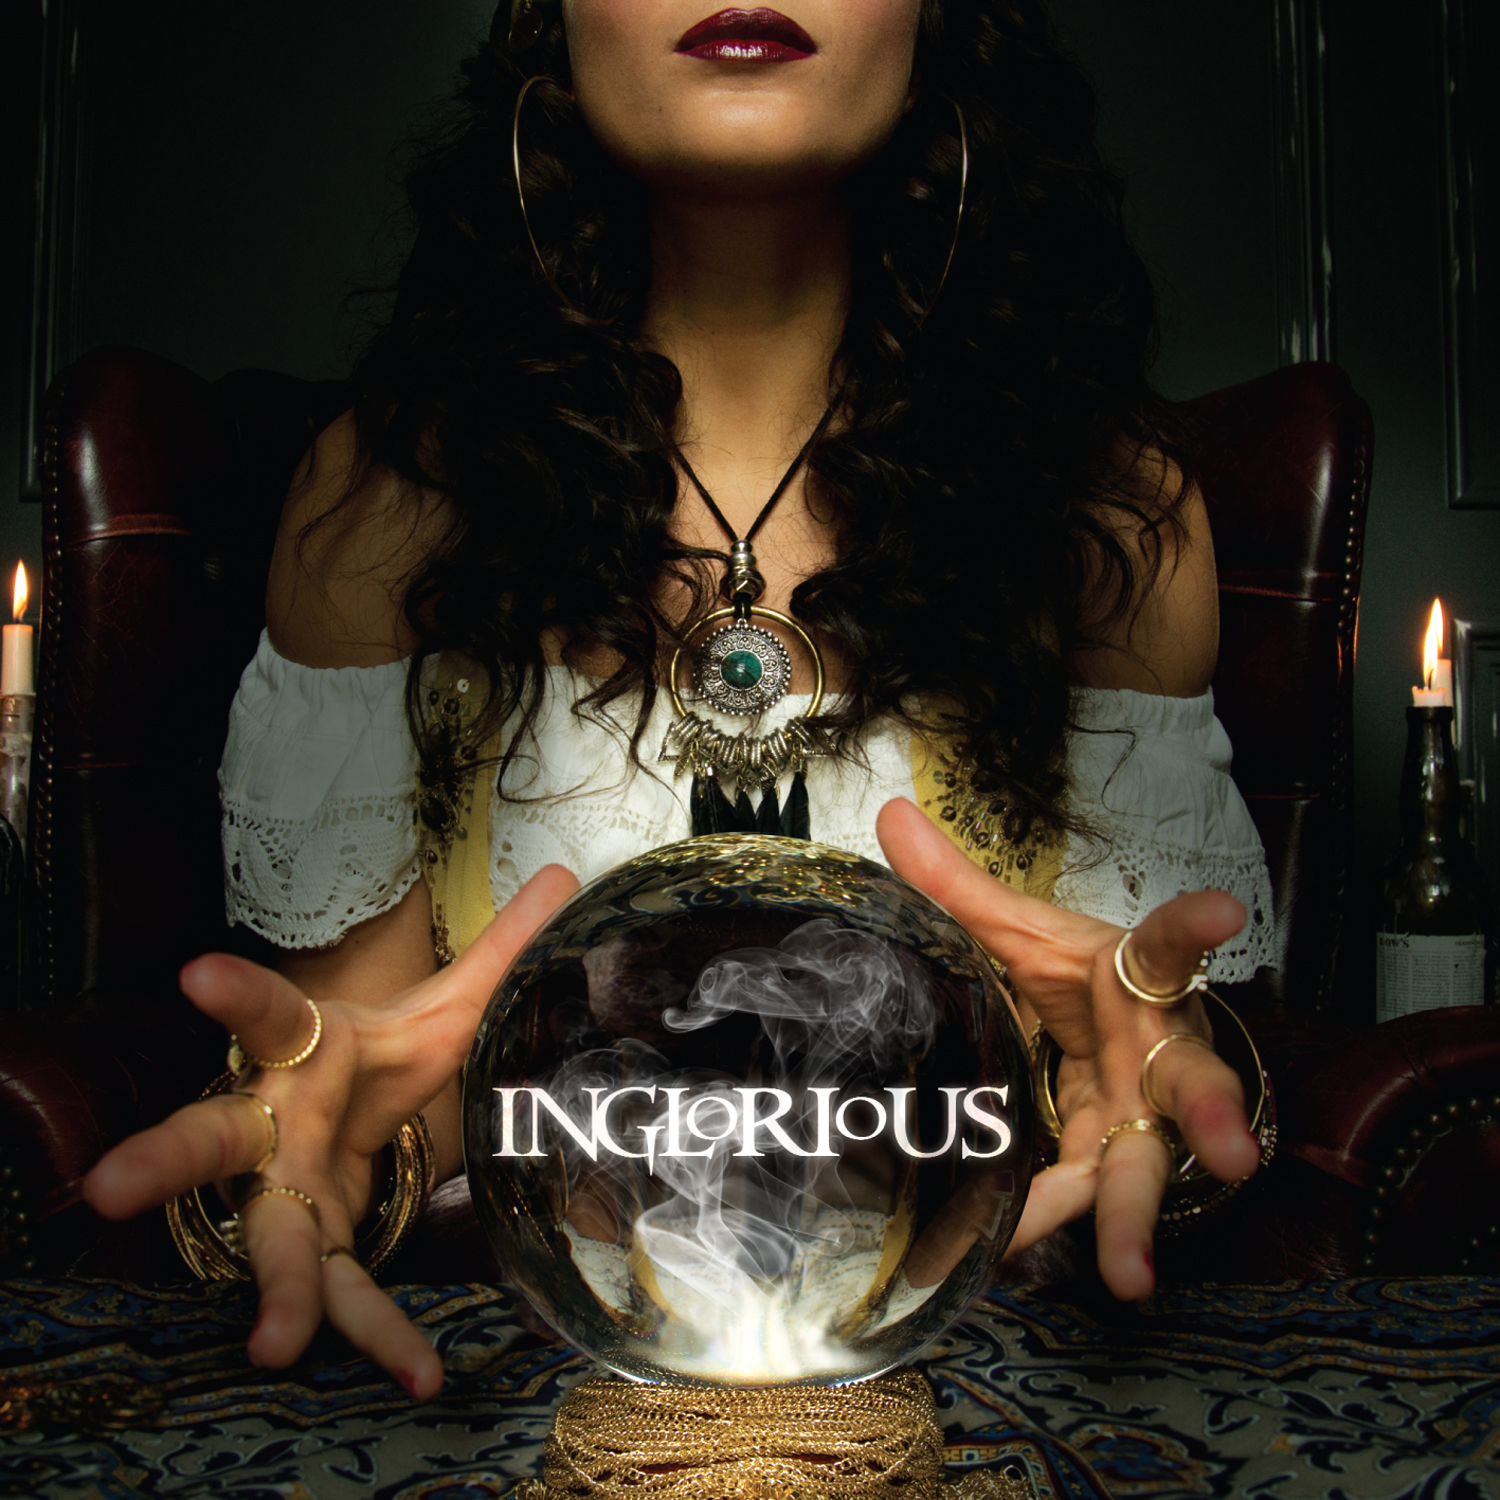 INGLORIOUS – INGLORIOUS – CD REVIEW